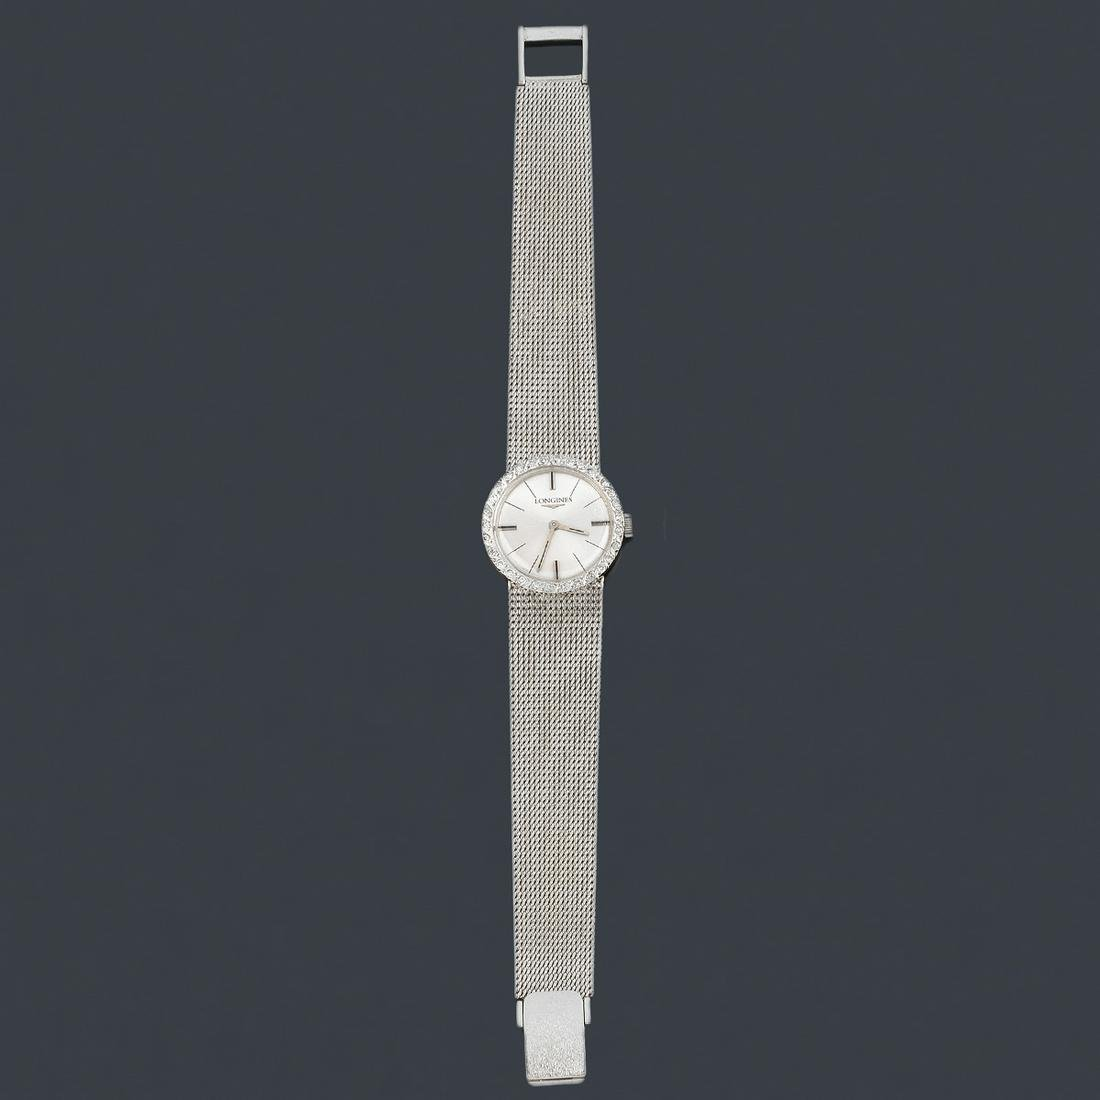 LONGINES ladies' with case and band in 18K white gold